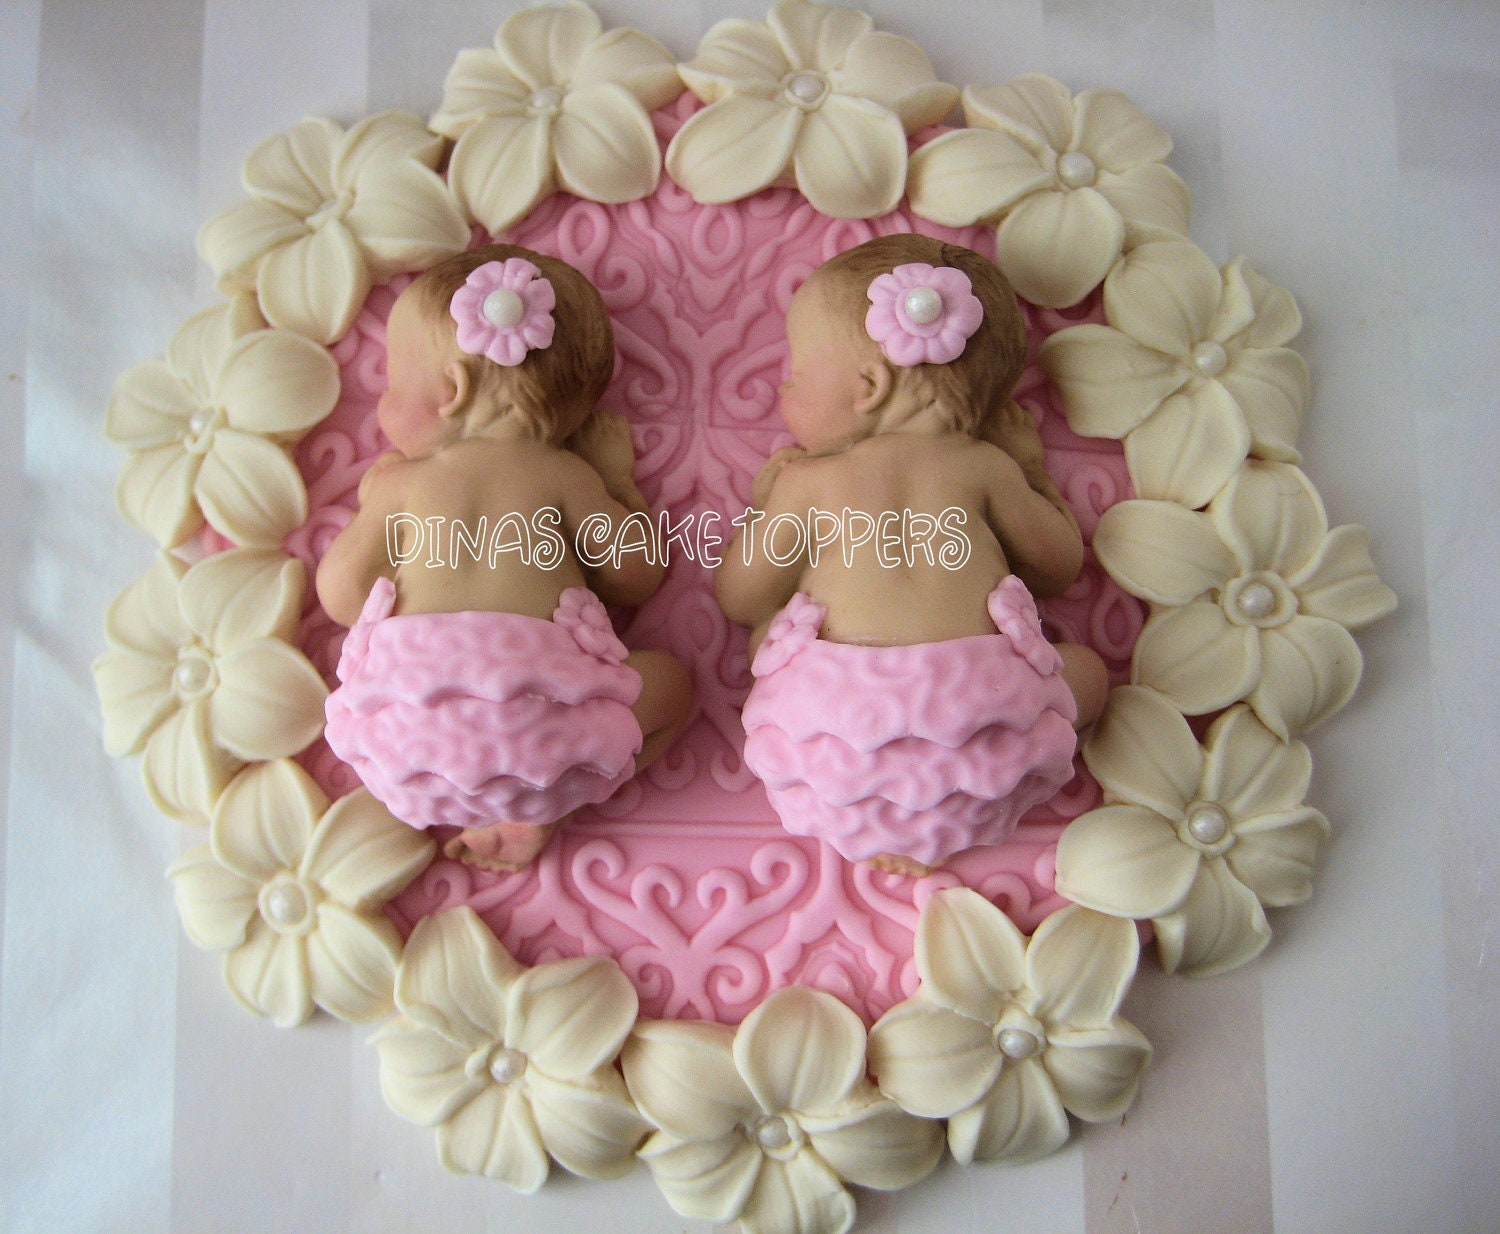 Baby shower decorations for twins best baby decoration for Baby decoration for baby shower